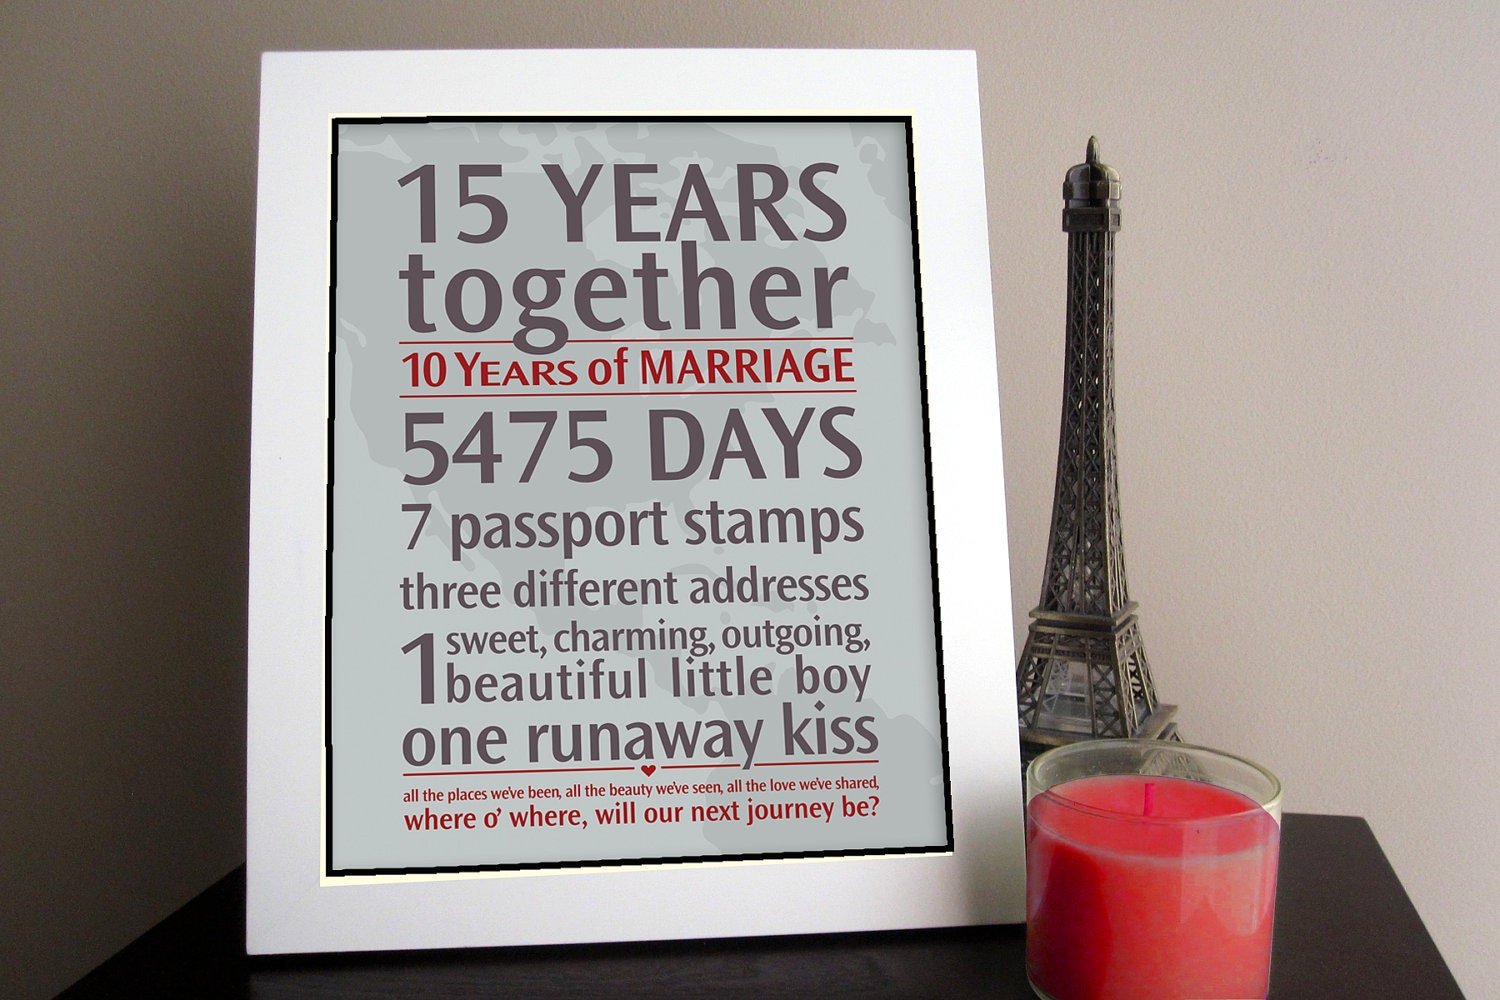 Best Anniversary Gift For Wedding: DIY Personalized Wedding Anniversary Gift: Your Loves